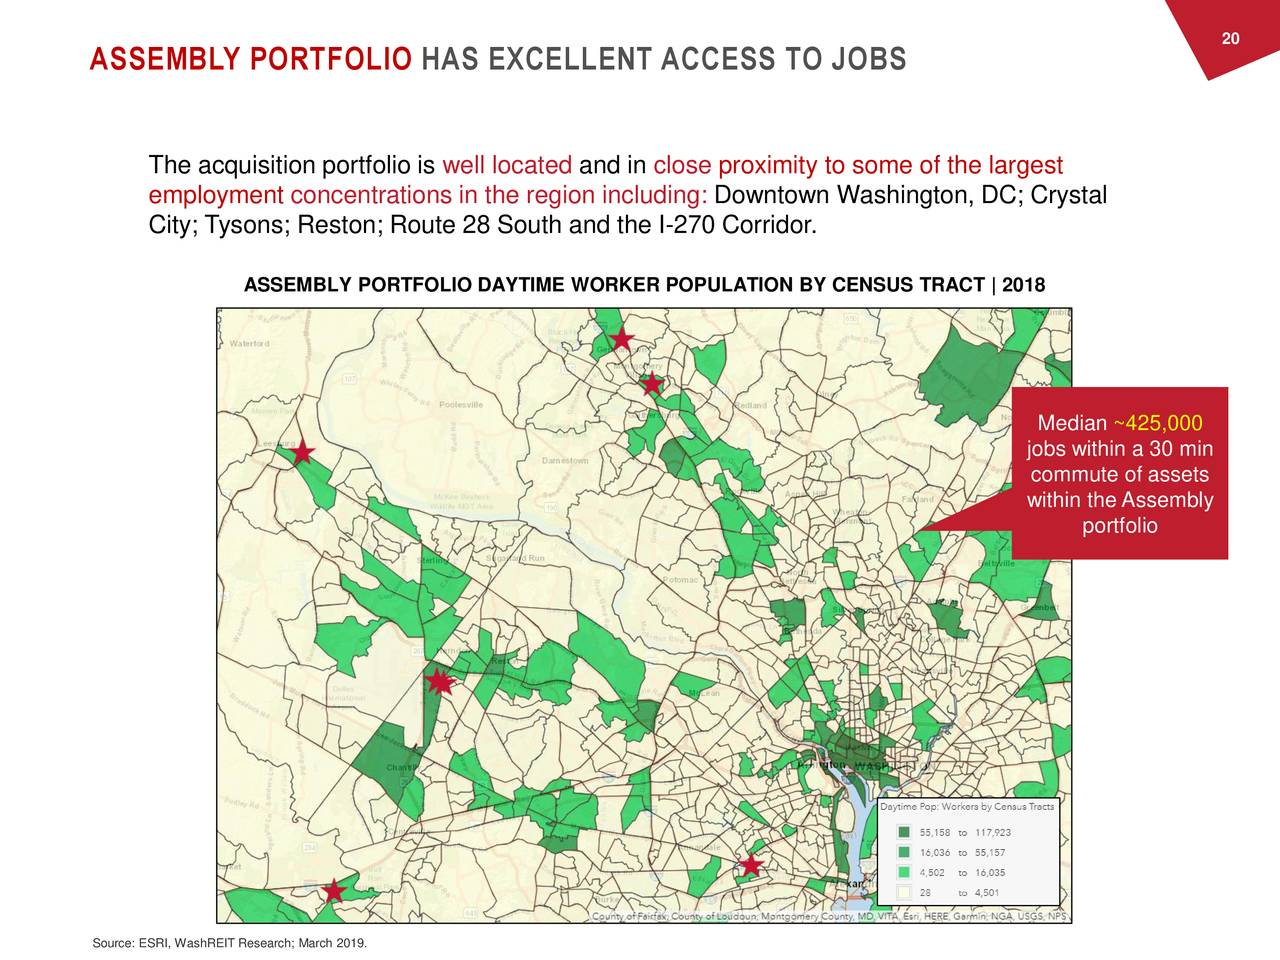 ASSEMBLY PORTFOLIO HAS EXCELLENT ACCESS TO JOBS The acquisition portfolio is well located and in close proximity to some of the largest employment concentrations in the region including: Downtown Washington, DC; Crystal City; Tysons; Reston; Route 28 South and the I-270 Corridor. ASSEMBLY PORTFOLIO DAYTIME WORKER POPULATION BY CENSUS TRACT | 2018 Median ~425,000 jobs within a 30 min commute of assets within the Assembly portfolio Source: ESRI, WashREIT Research; March 2019.